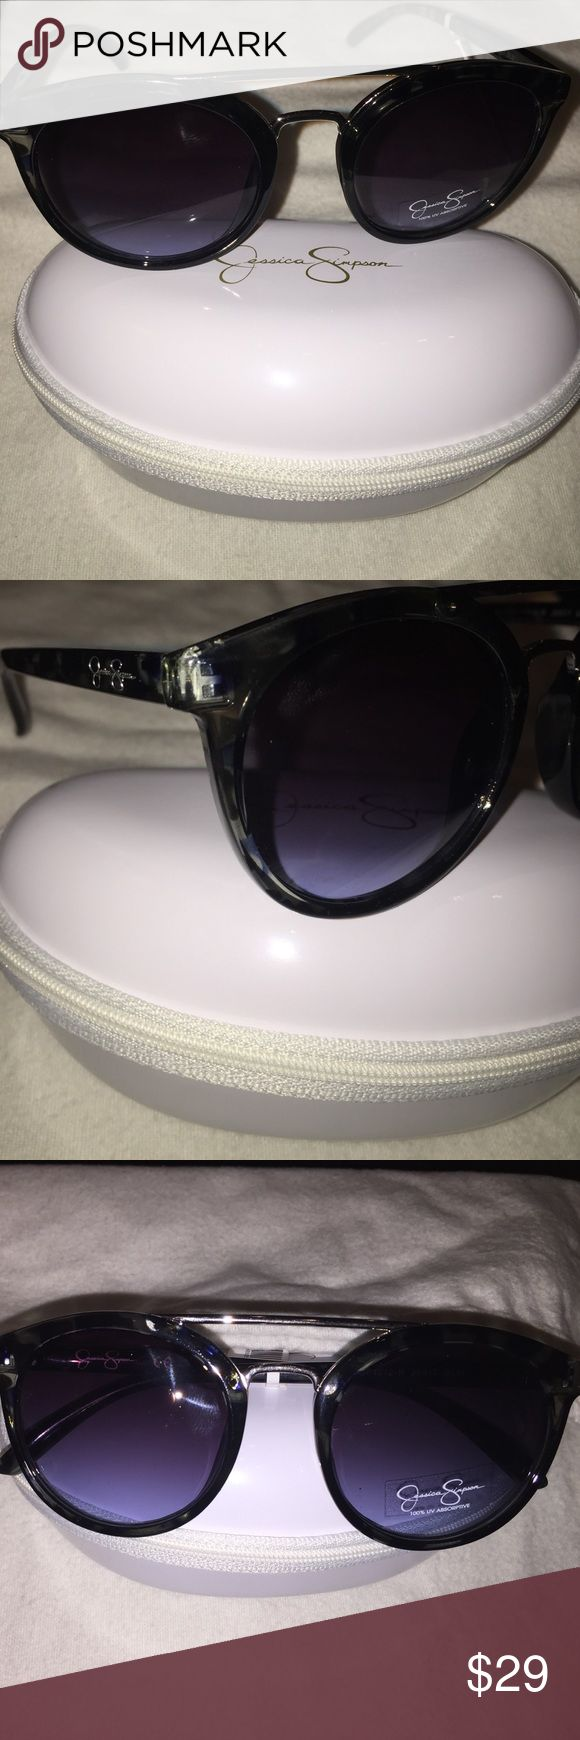 Jessica Simpson blue leopard sunglasses NWT Jessica Simpson blue leopard sunglasses with 100% UV protection. New with tags. Absolutely gorgeous! Comes with case. Jessica Simpson Accessories Sunglasses